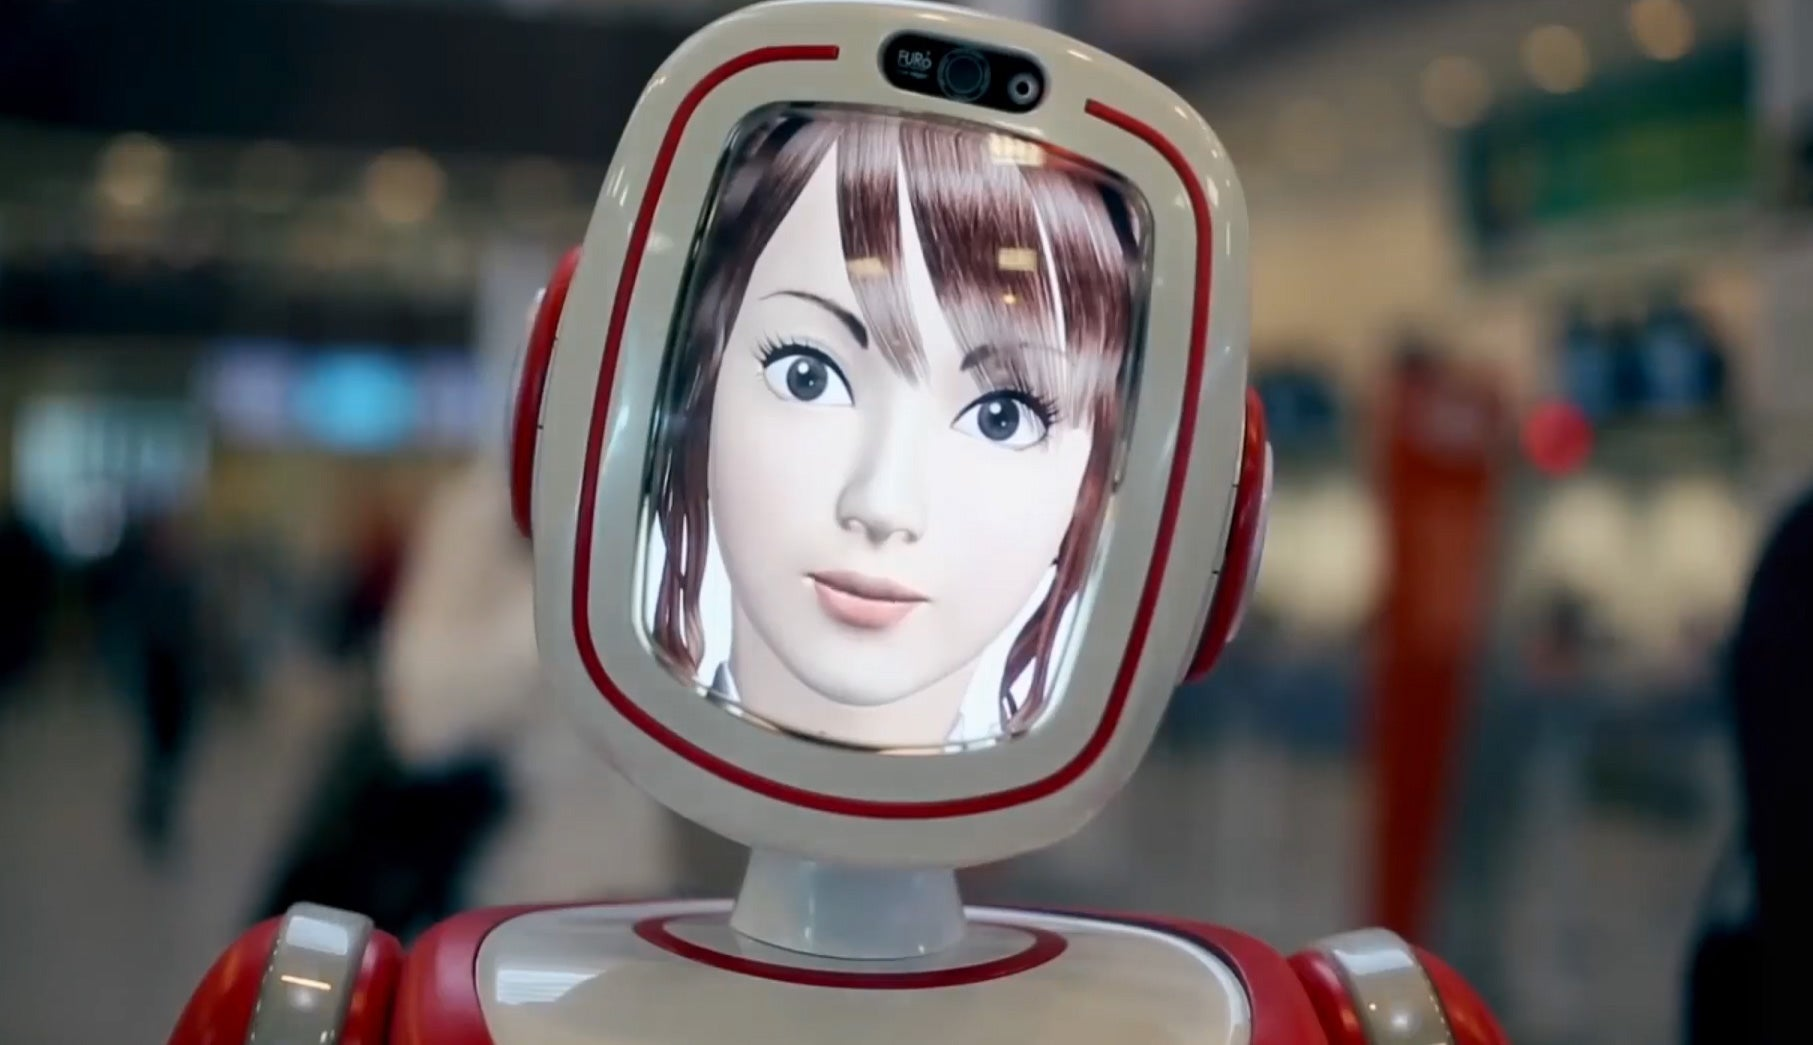 CES 2015: The Furo-S Service Robot Wants To Help You Catch Your Flight [Video]